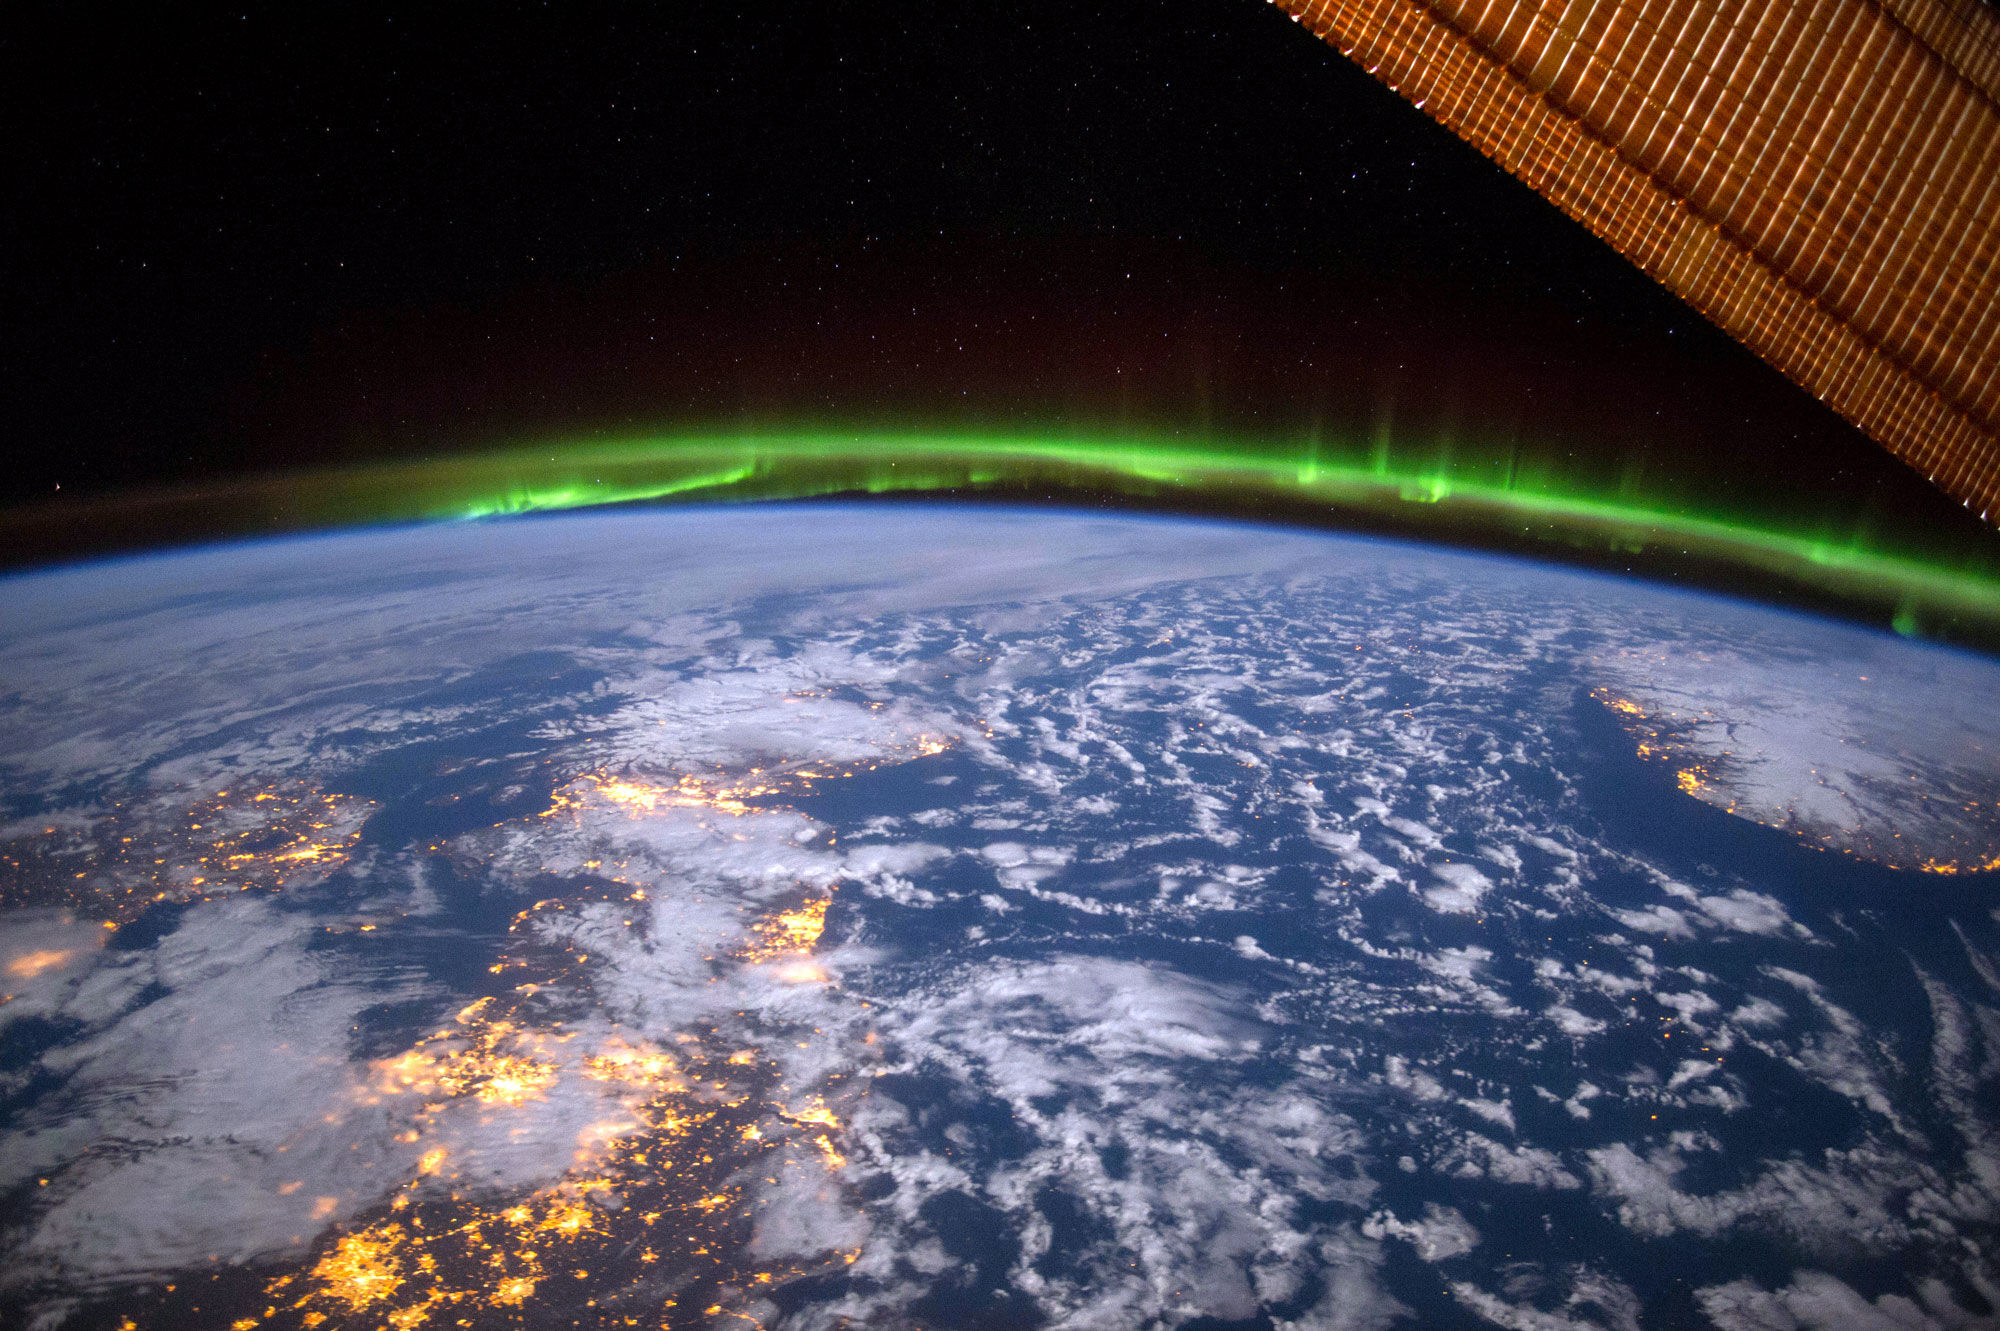 The aurora borealis over the U.K. Photo by Terry Virts from the book  View from Above,  published by National Geographic, 2017. Courtesy of Terry Virts and National Geographic.